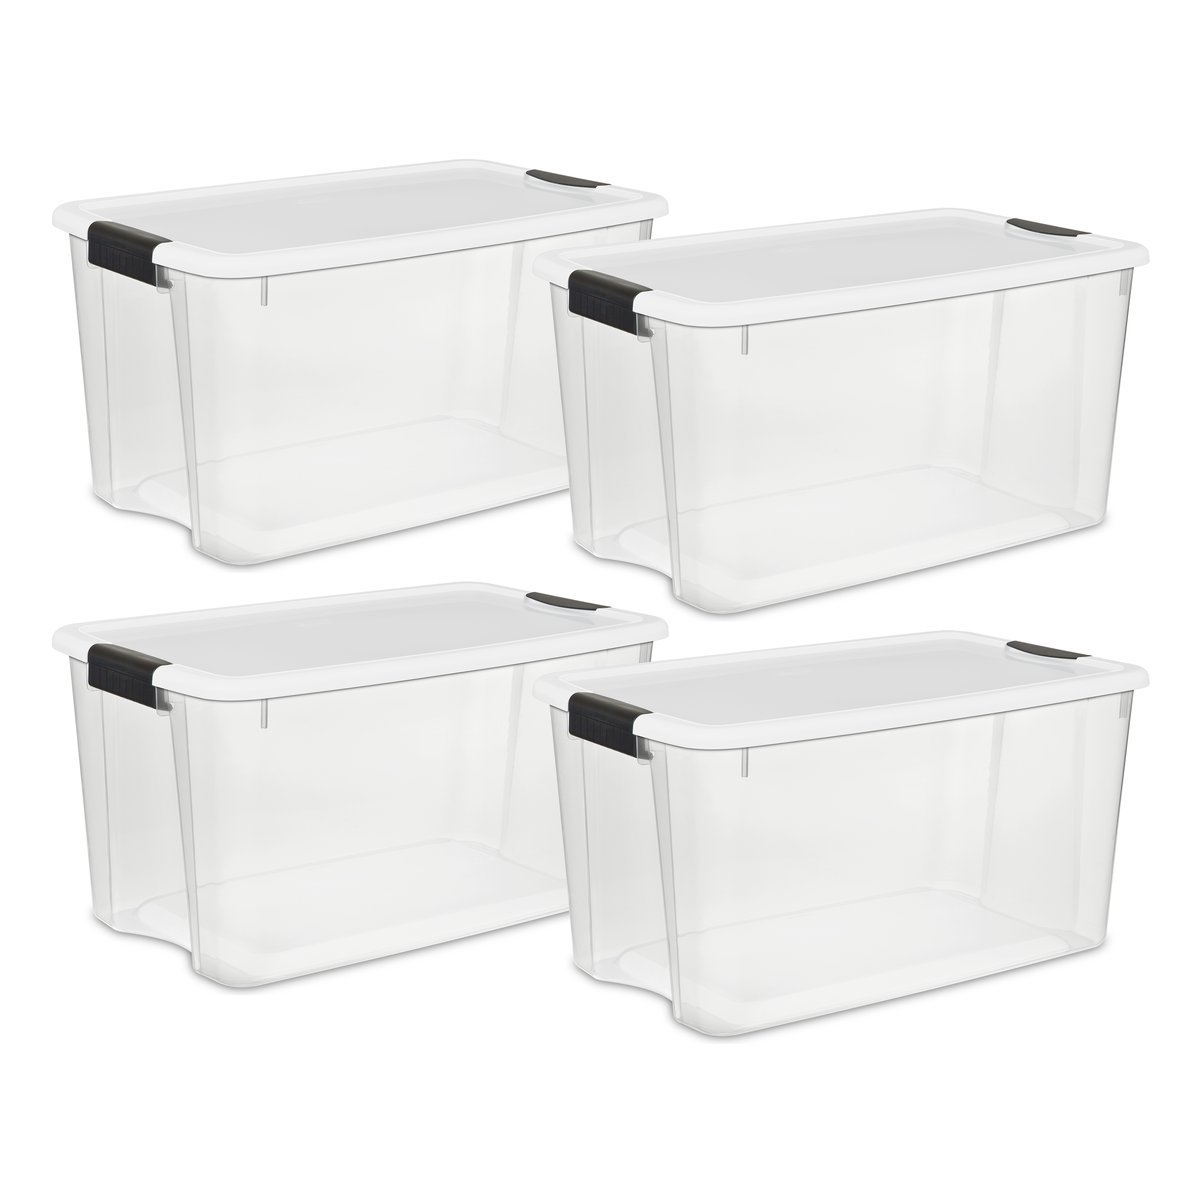 Sterilite 19889804 70 Quart/66 Liter Ultra Latch Box, Clear with a White Lid and Black Latches, 4-Pack by STERILITE